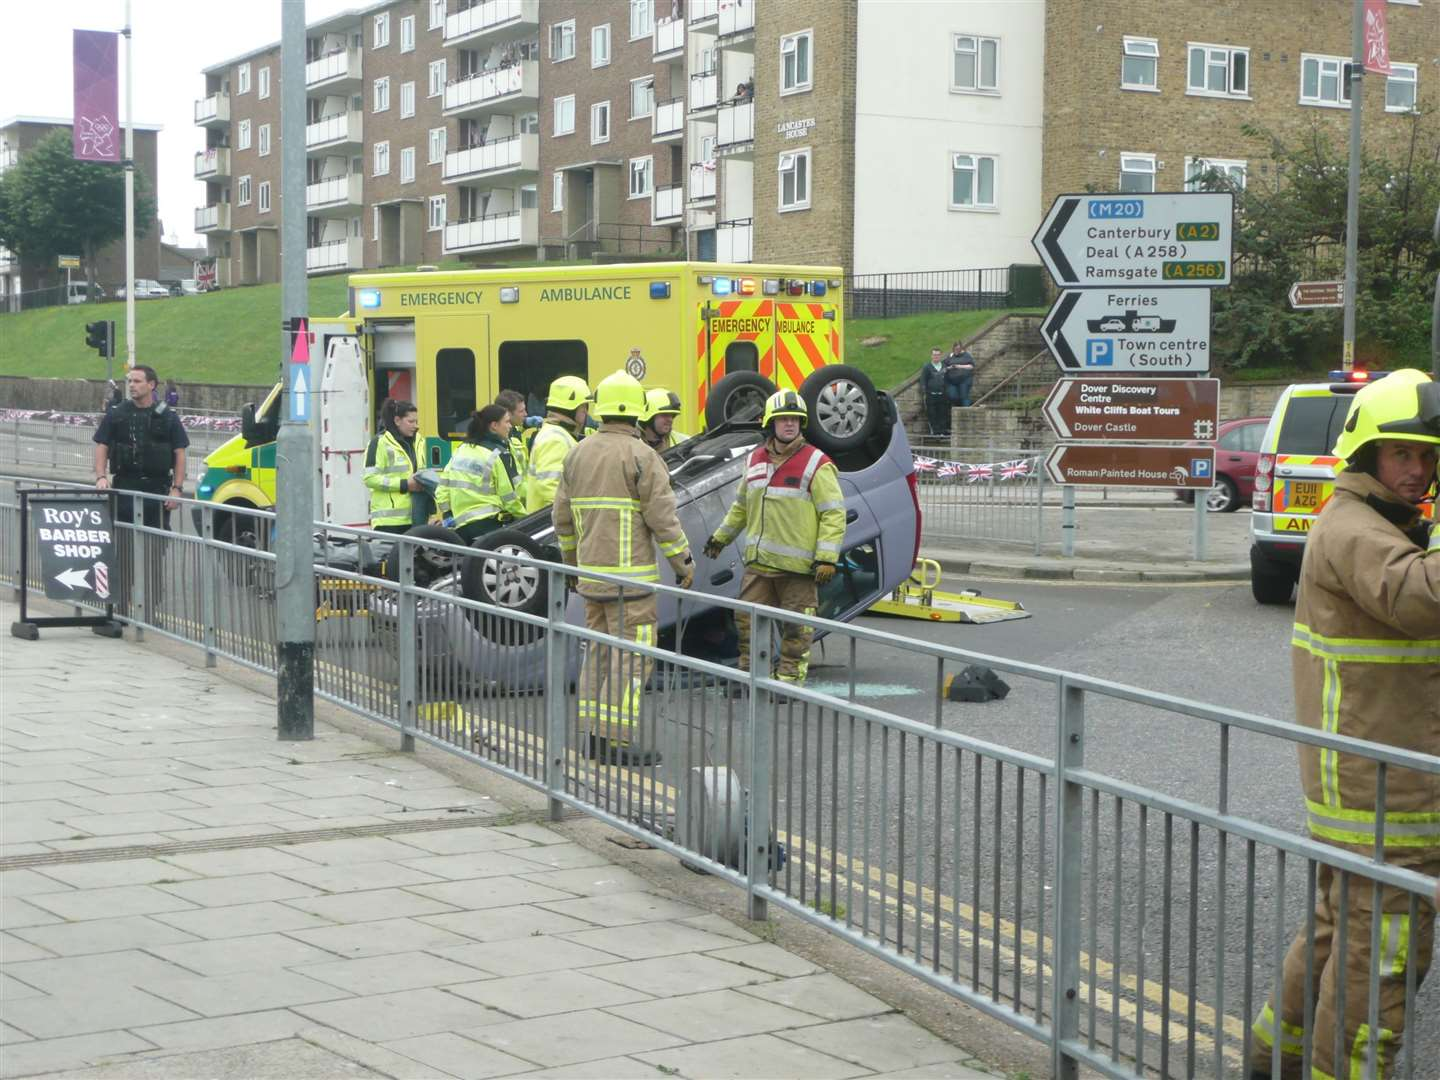 The scene of a crash at York Street, Dover, when a car overturned just a couple of hours before the torchbearer was due. Pic: Graham Tutthill